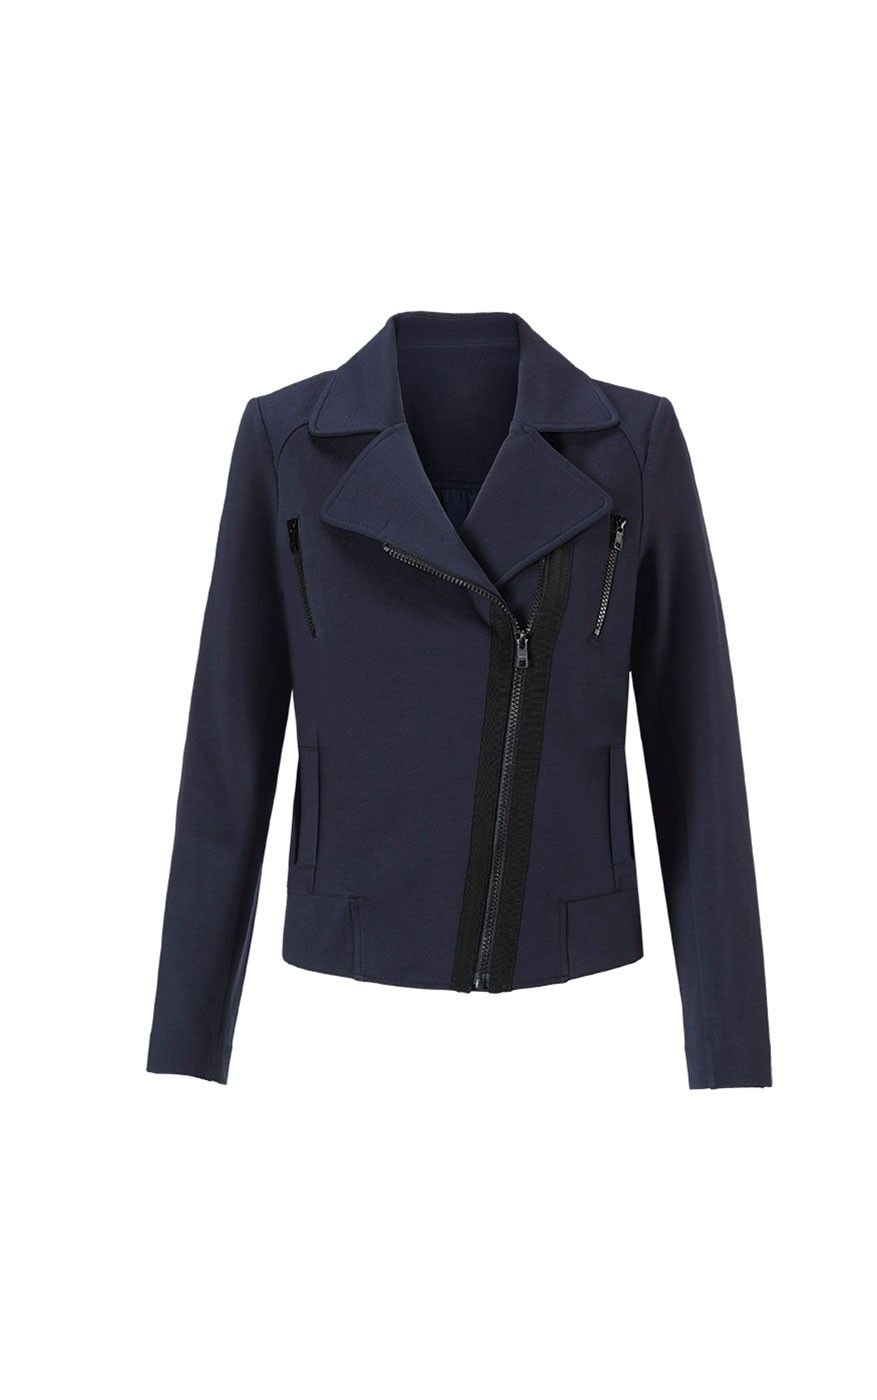 Jackets Outerwear Blazers Coats Cabi Clothing Jackets Clothes Outerwear Jackets [ 1400 x 877 Pixel ]